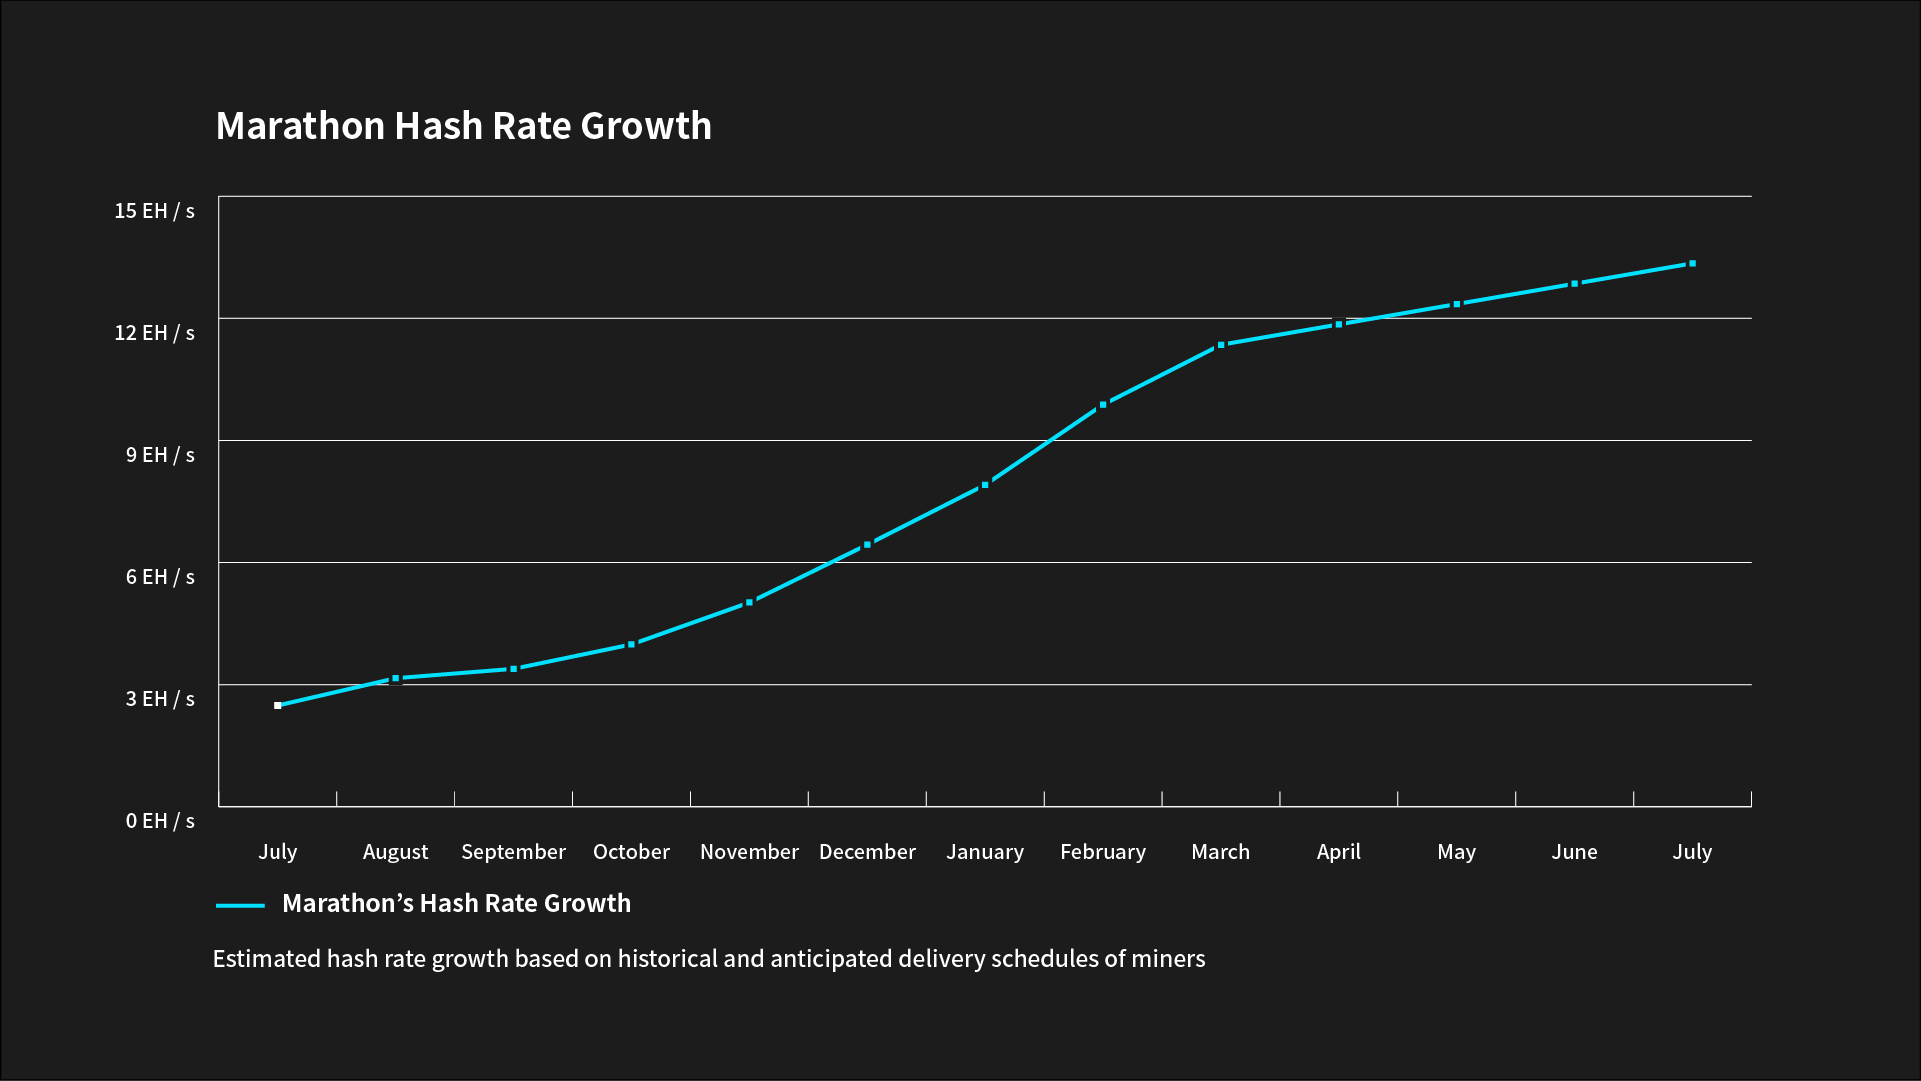 A chart depicting Marathon's hash rate growth from July 2021 until July 2022.